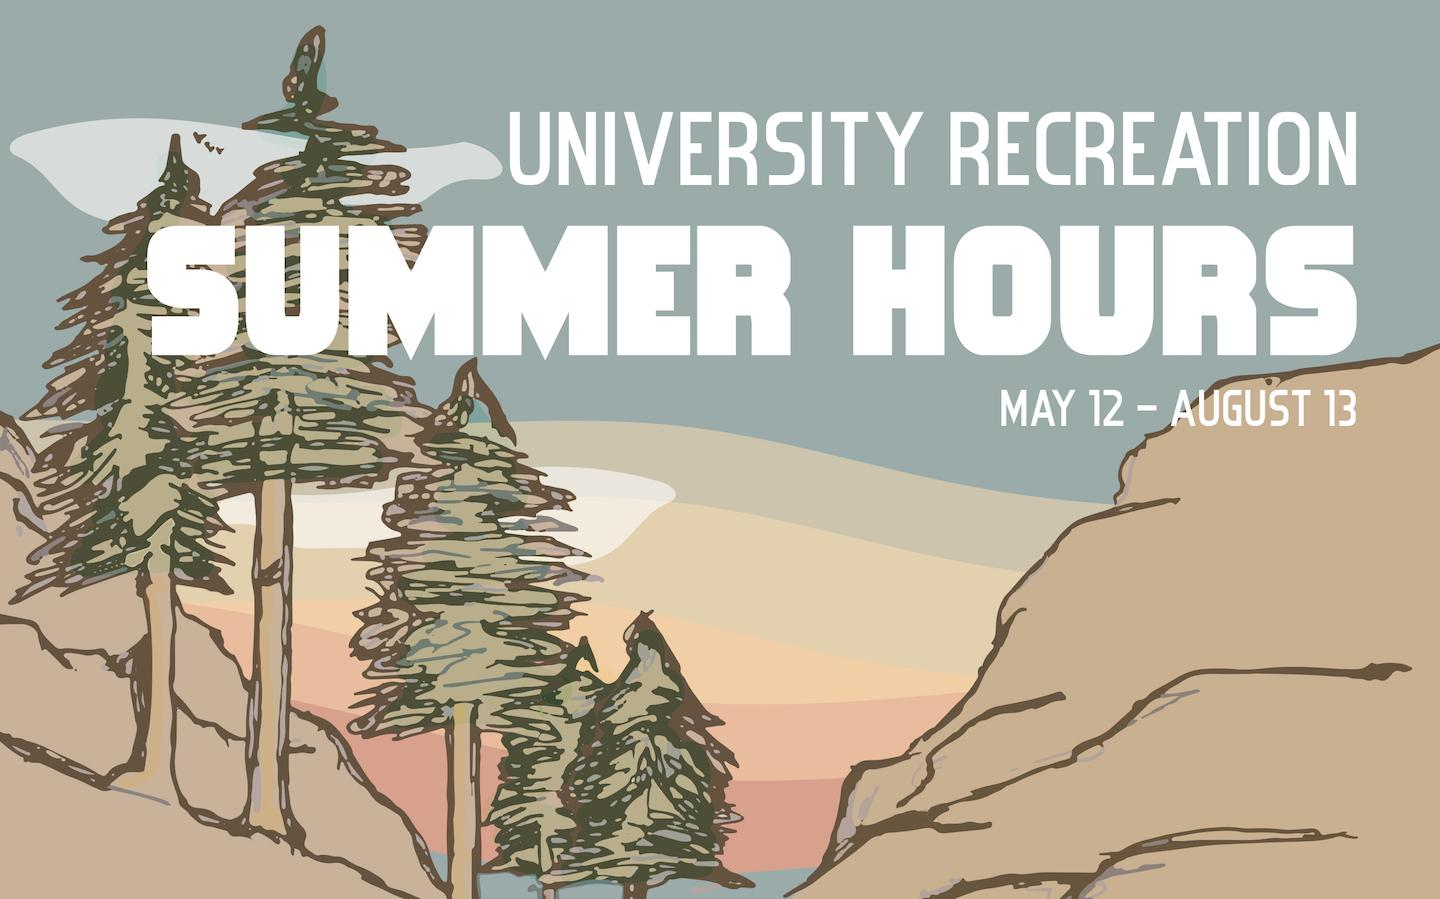 Summer hours begin May 12 and end August 13